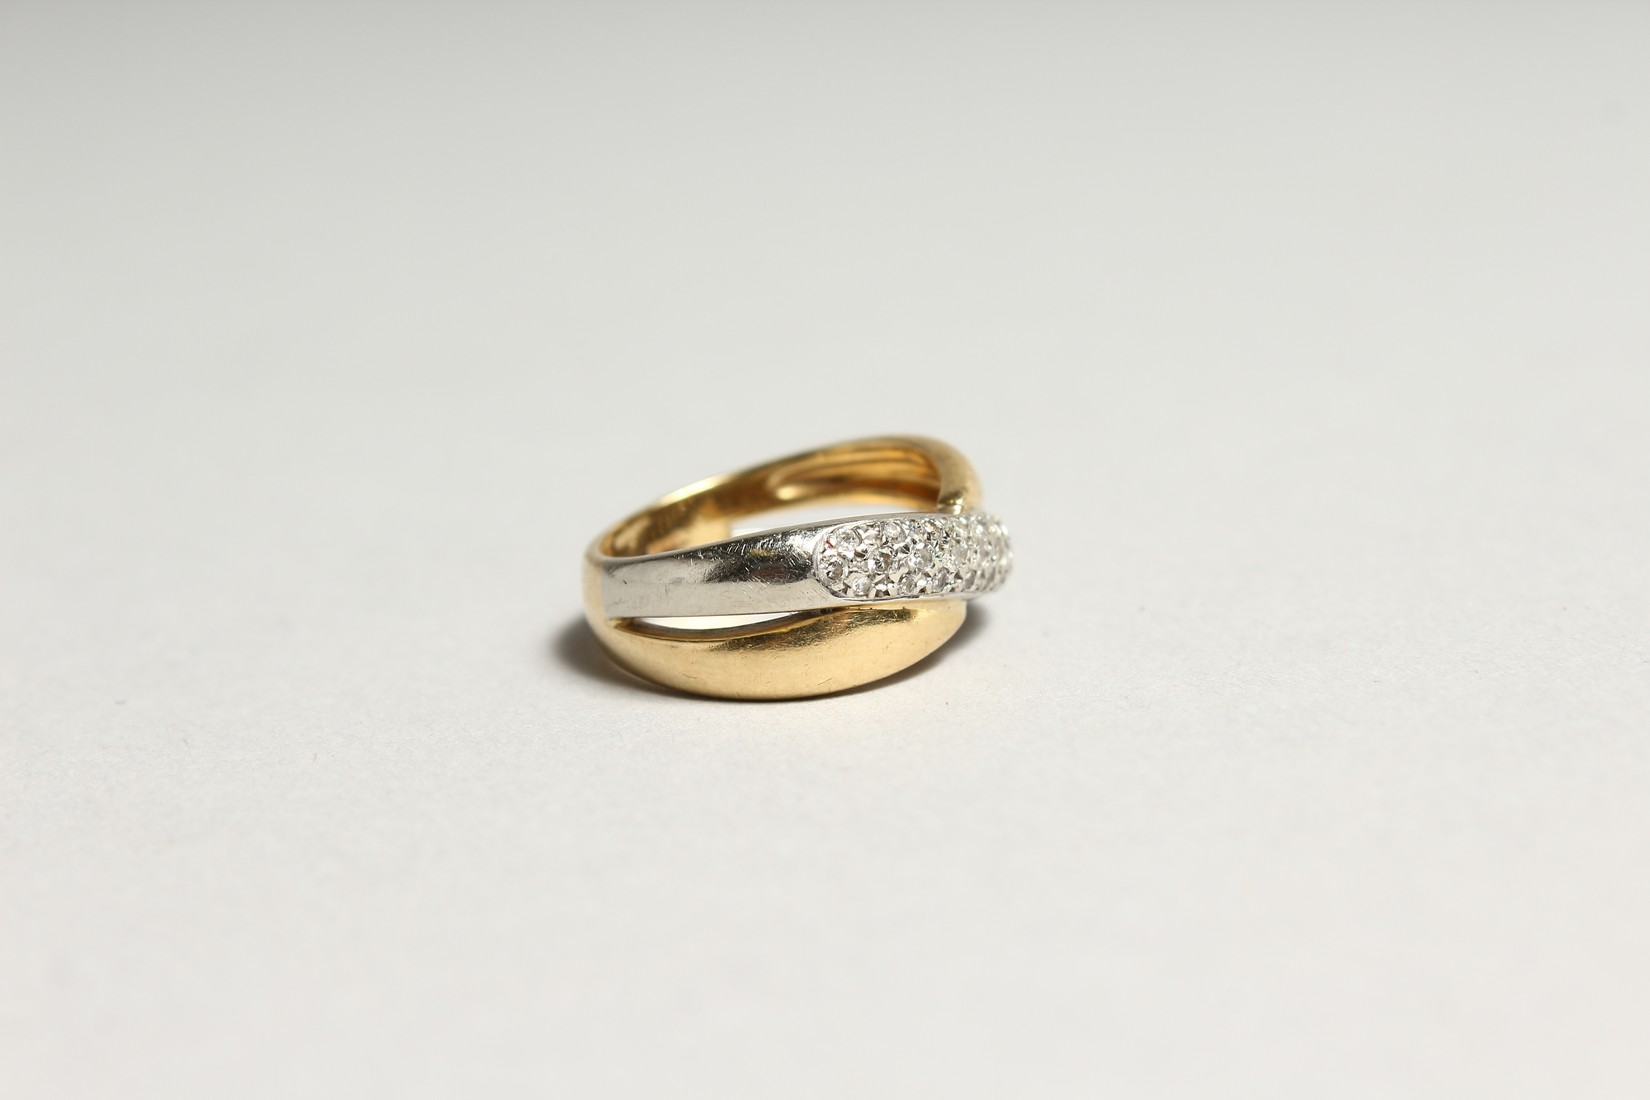 AN 18CT GOLD DIAMOND SET CROSS OVER RING - Image 2 of 6